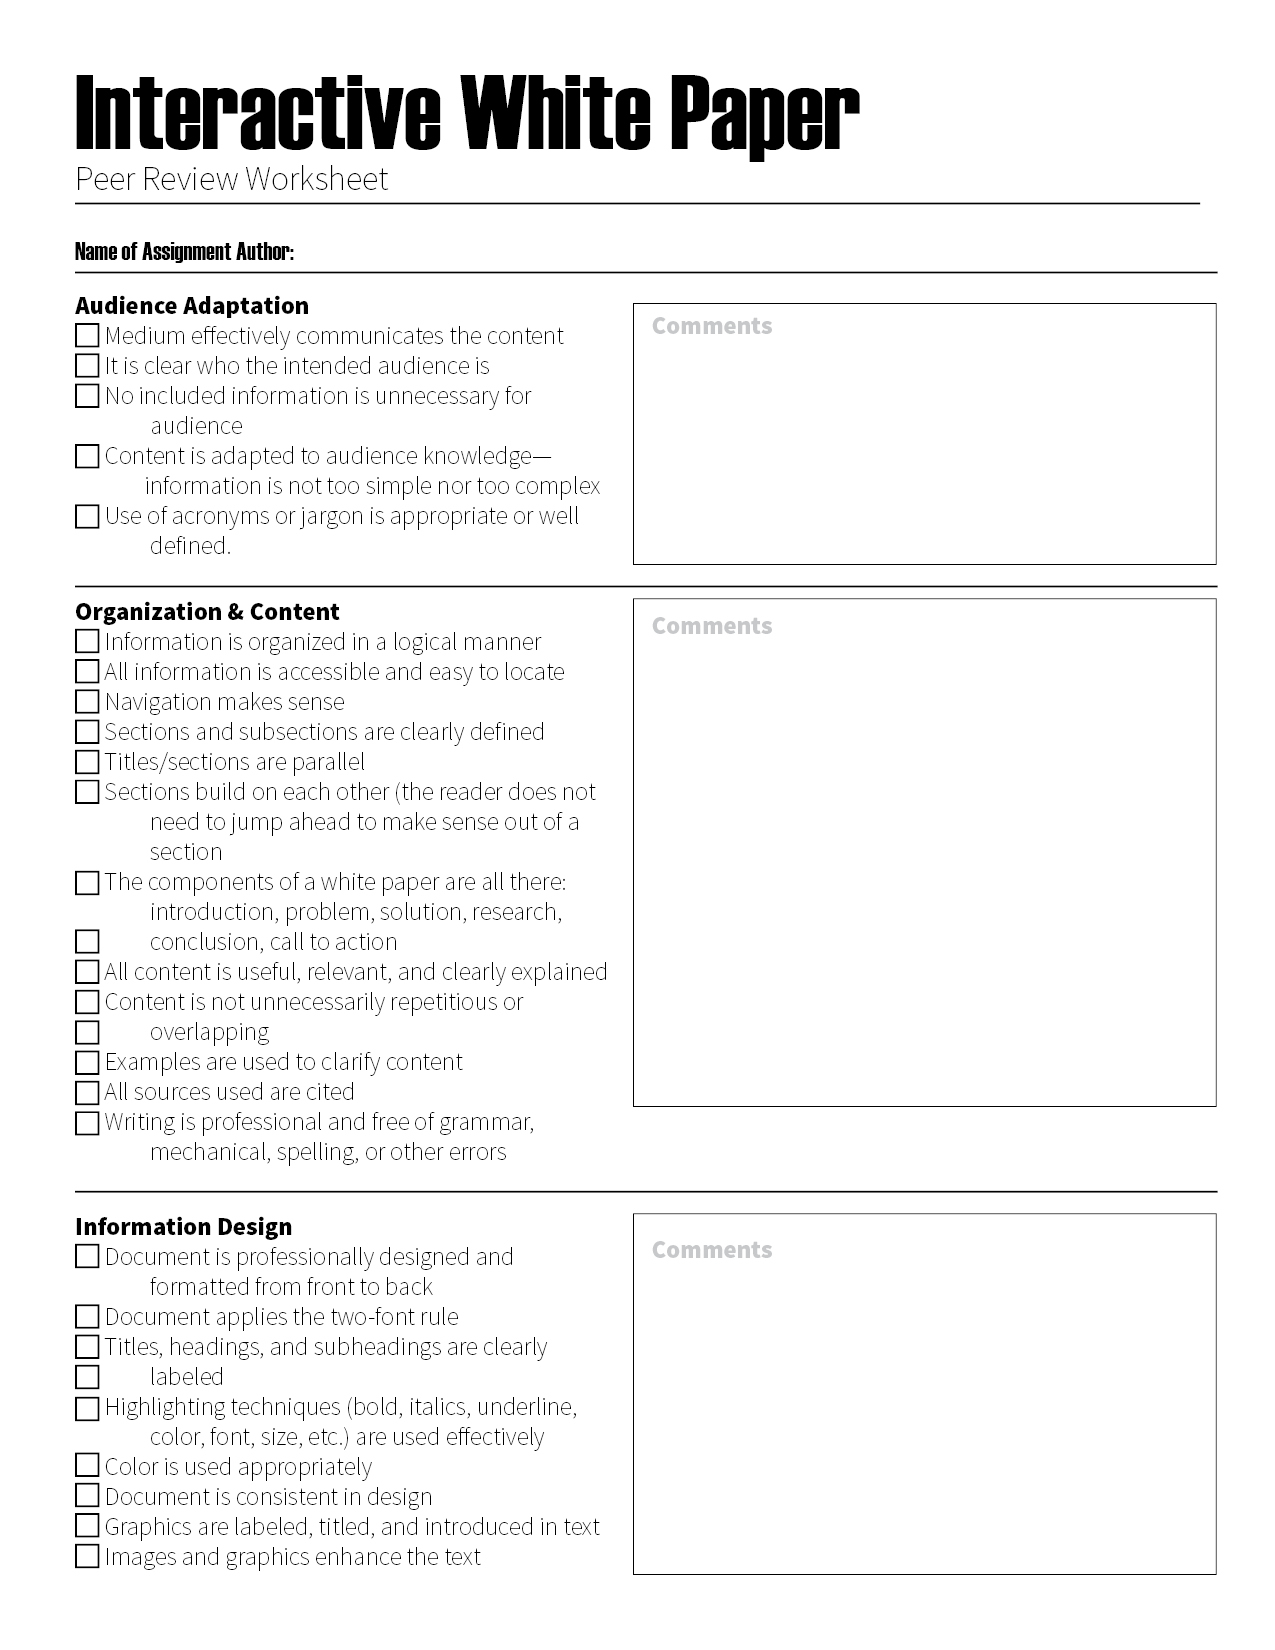 Downloads For Teachers Checklists And Peer Reviews The Visual Communication Guy Designing